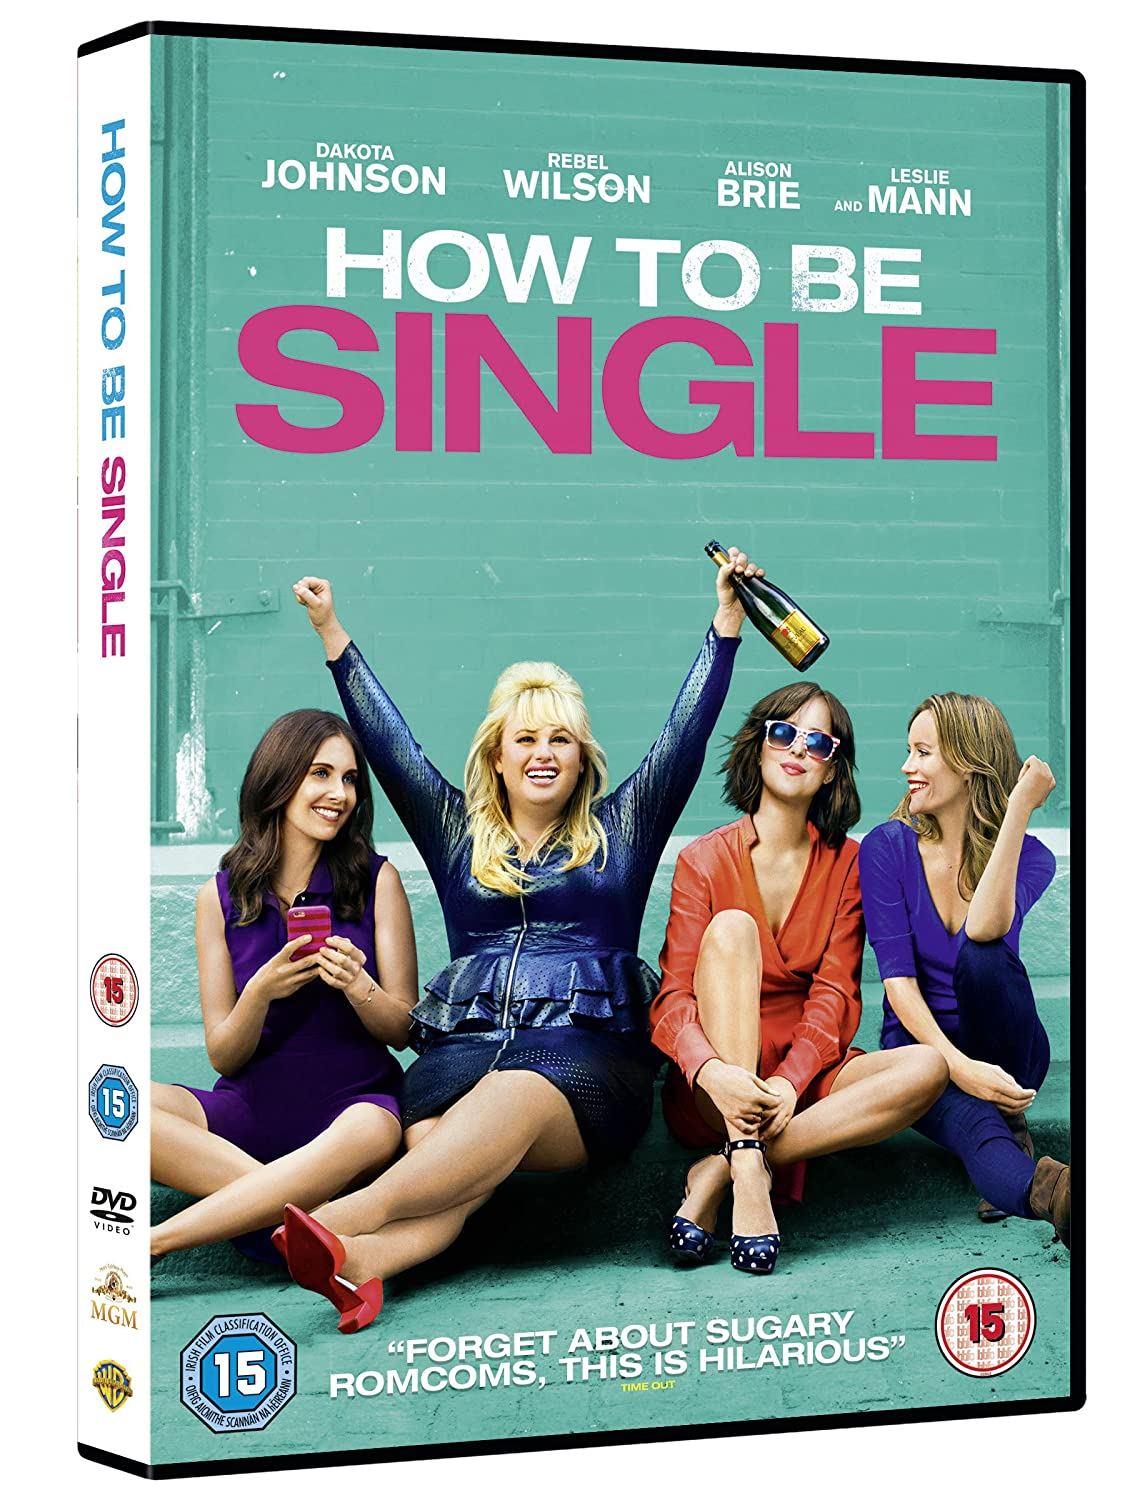 How To Be Single [dvd] [2016]: Amazon: Dakota Johnson, Rebel Wilson,  Leslie Mann, Damon Wayans Jr, Christian Ditter, Drew Barrymore, Dana Fox,